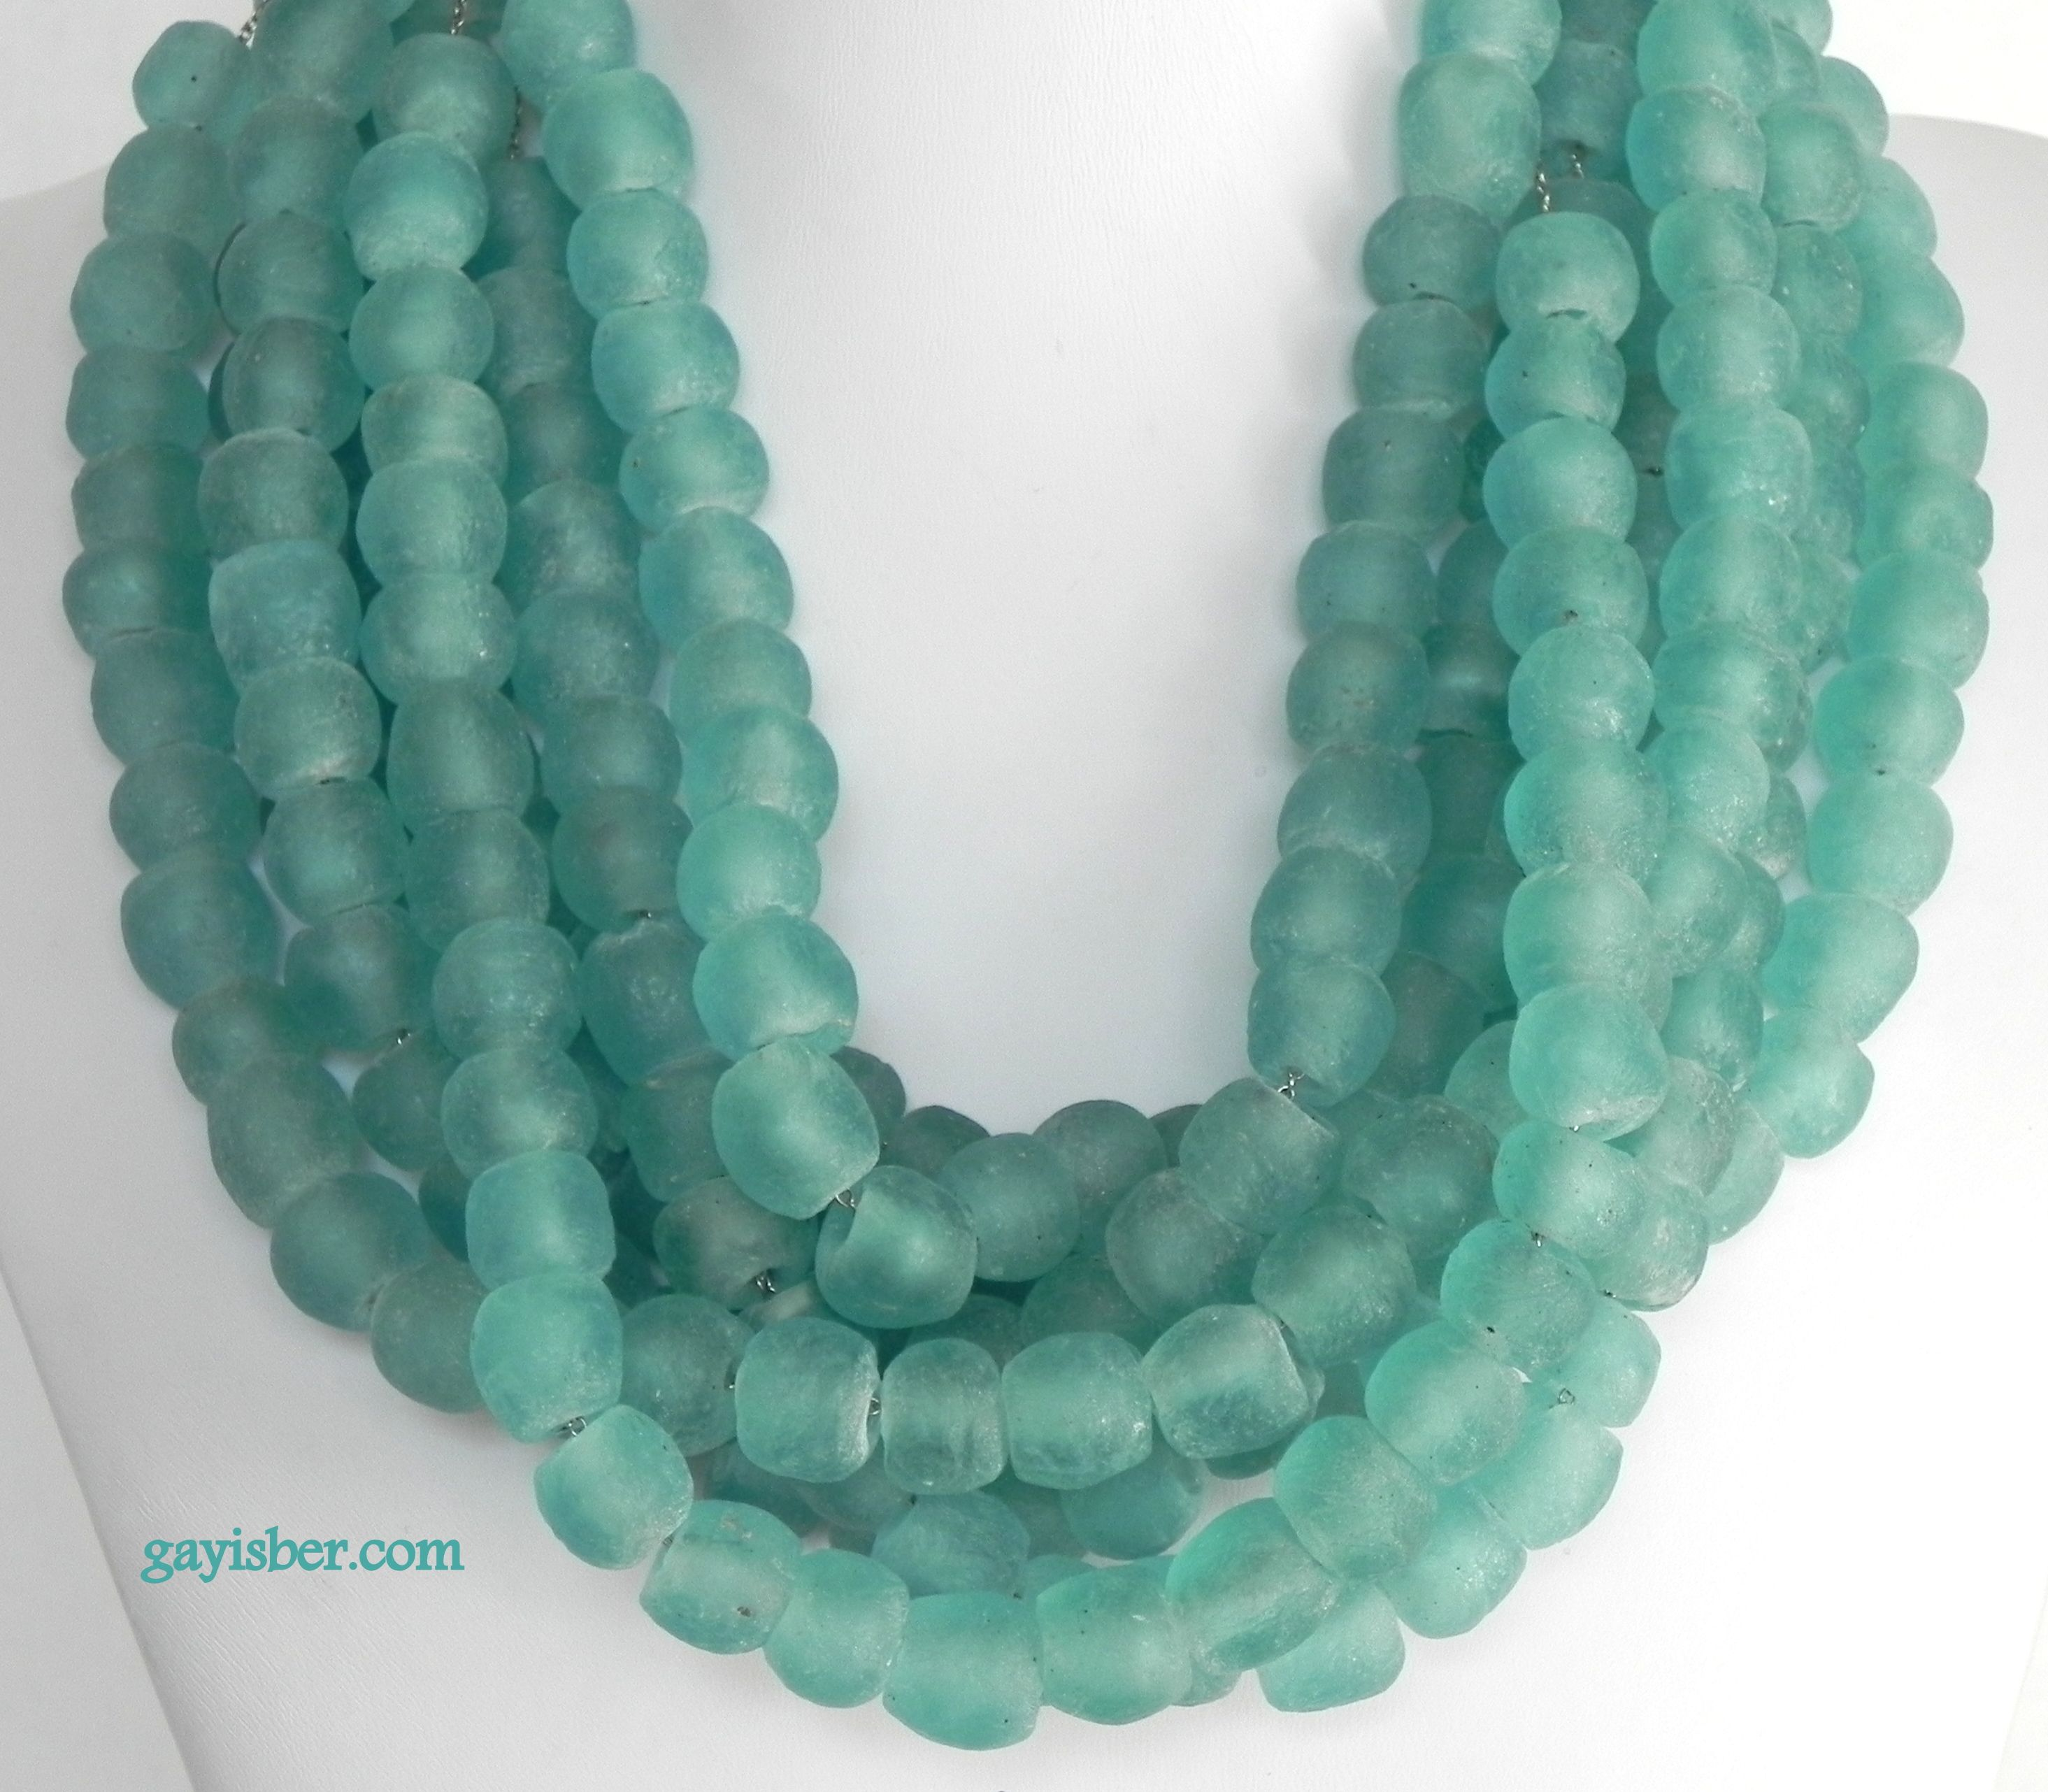 Frosty Aqua necklace by Gay Isber using African recycled glass beads.